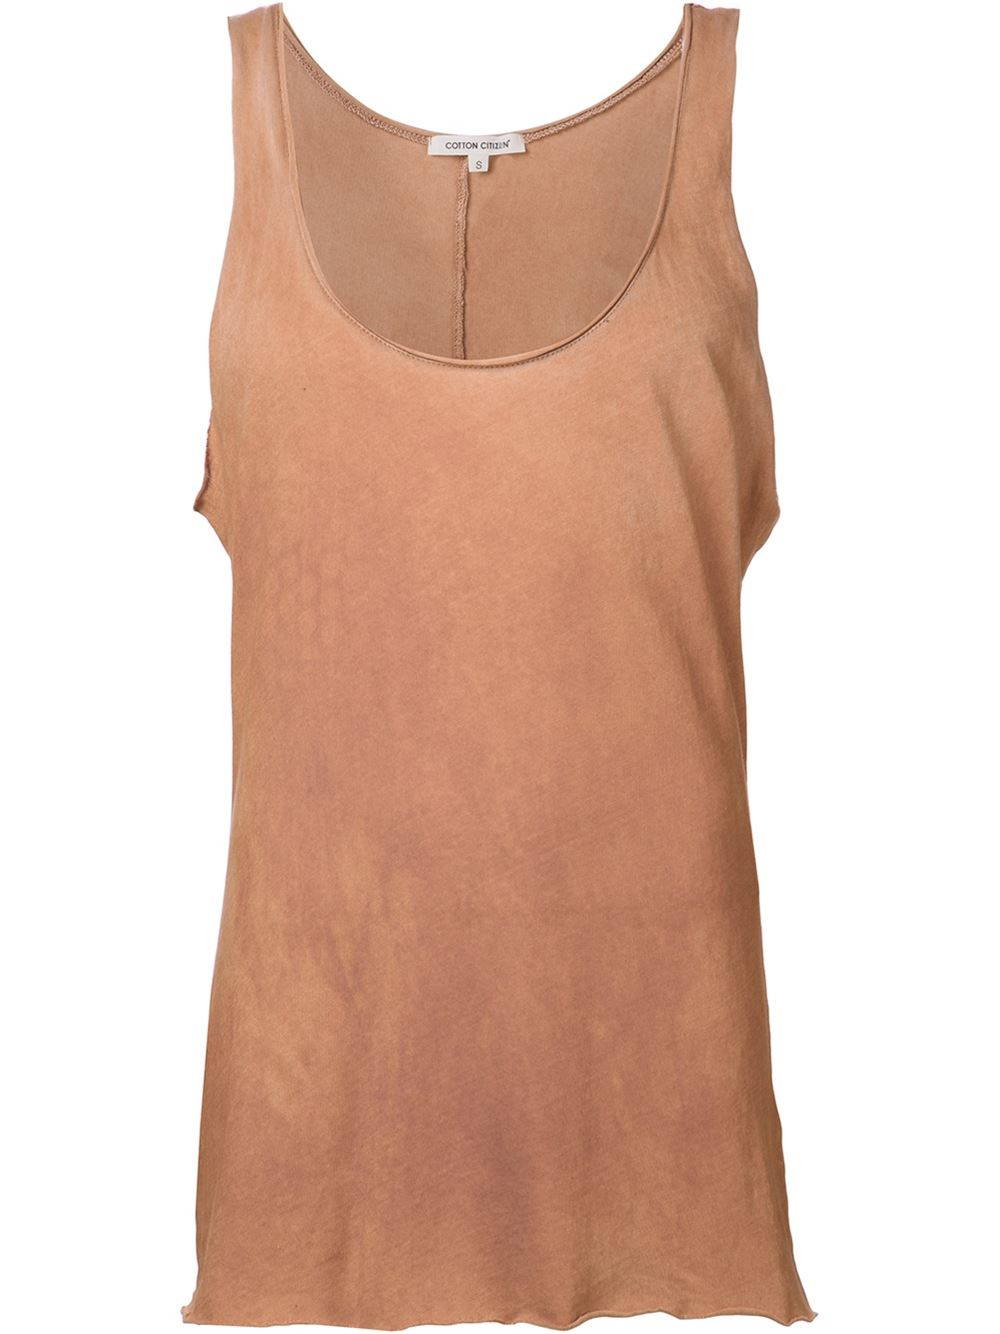 Find great deals on eBay for Long Tank Top in Tops and Blouses for All Women. Shop with confidence.